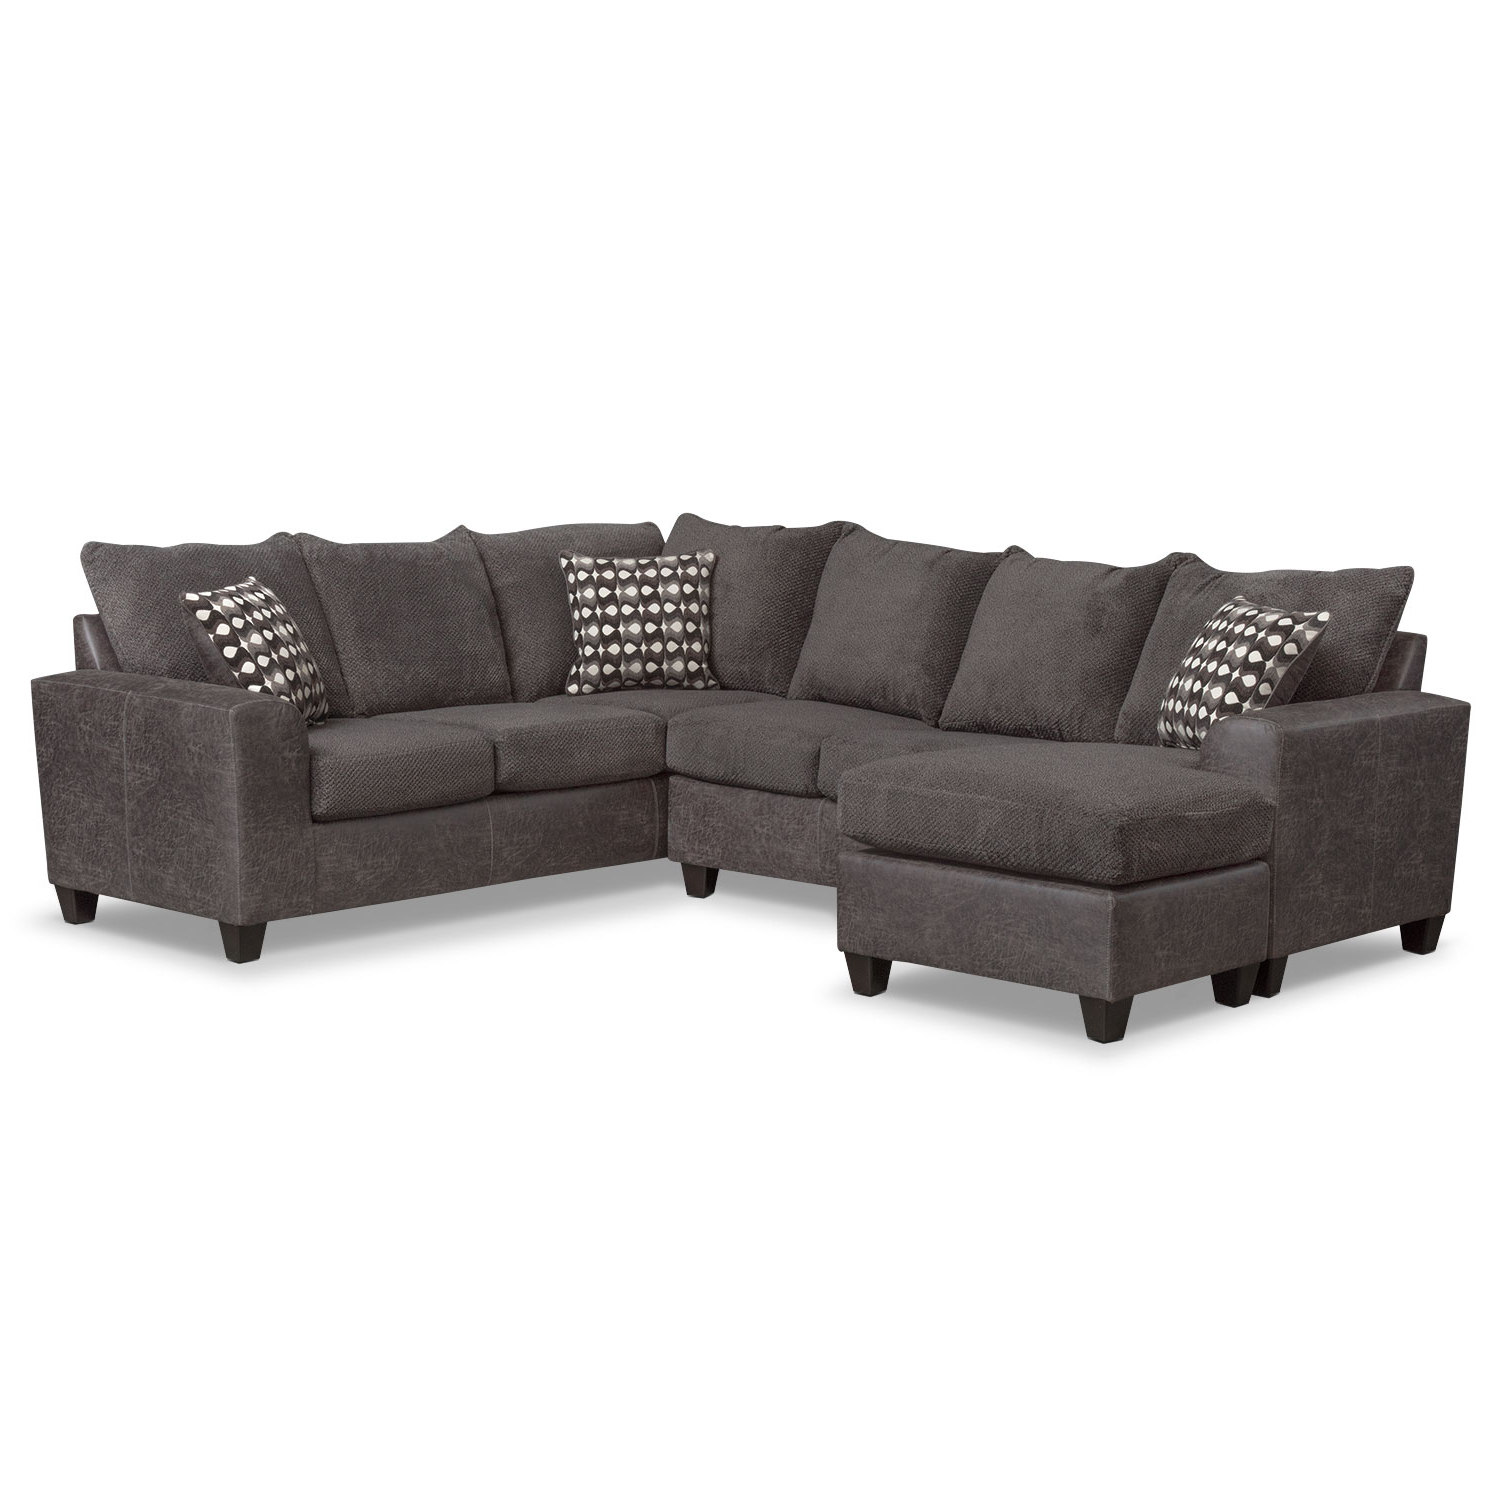 Brando 3 Piece Sectional With Chaise And Swivel Chair Set (View 5 of 20)